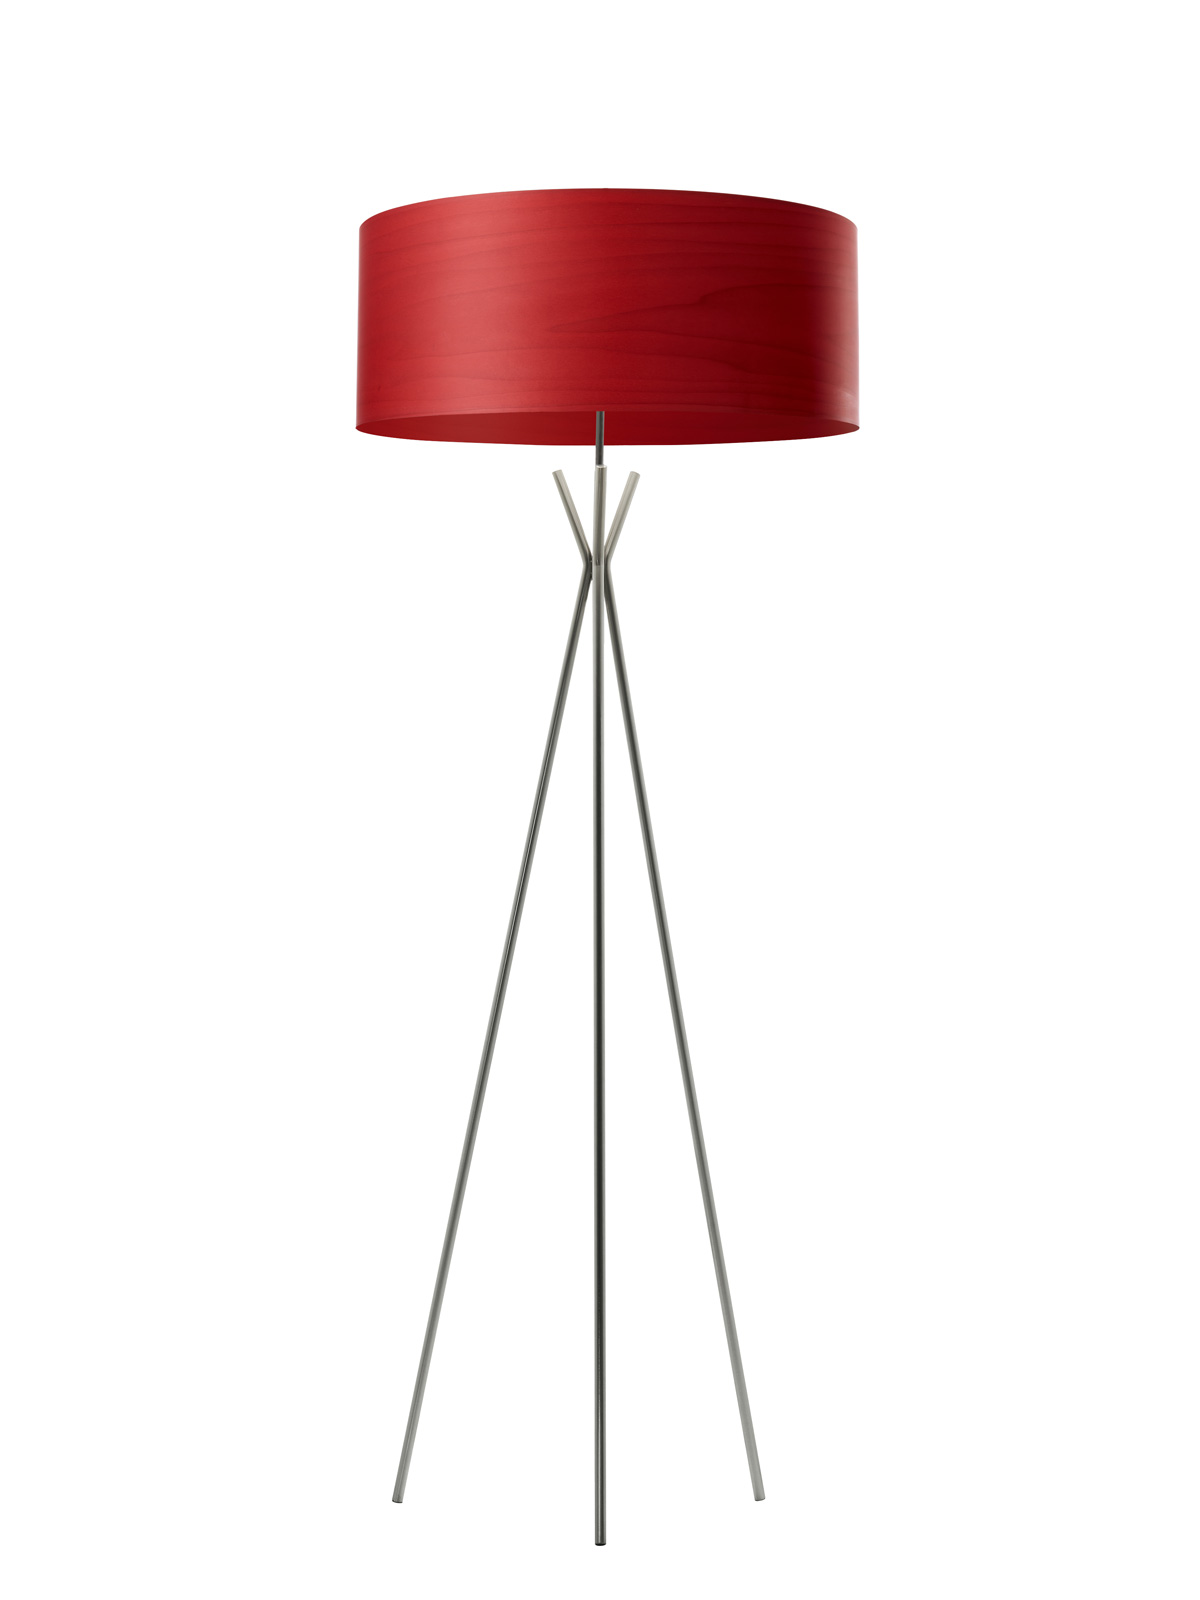 Tripod Stehlampe mit rotem Lampenschirm aus Holz Furnier LZF Lamps Gea Cosmos